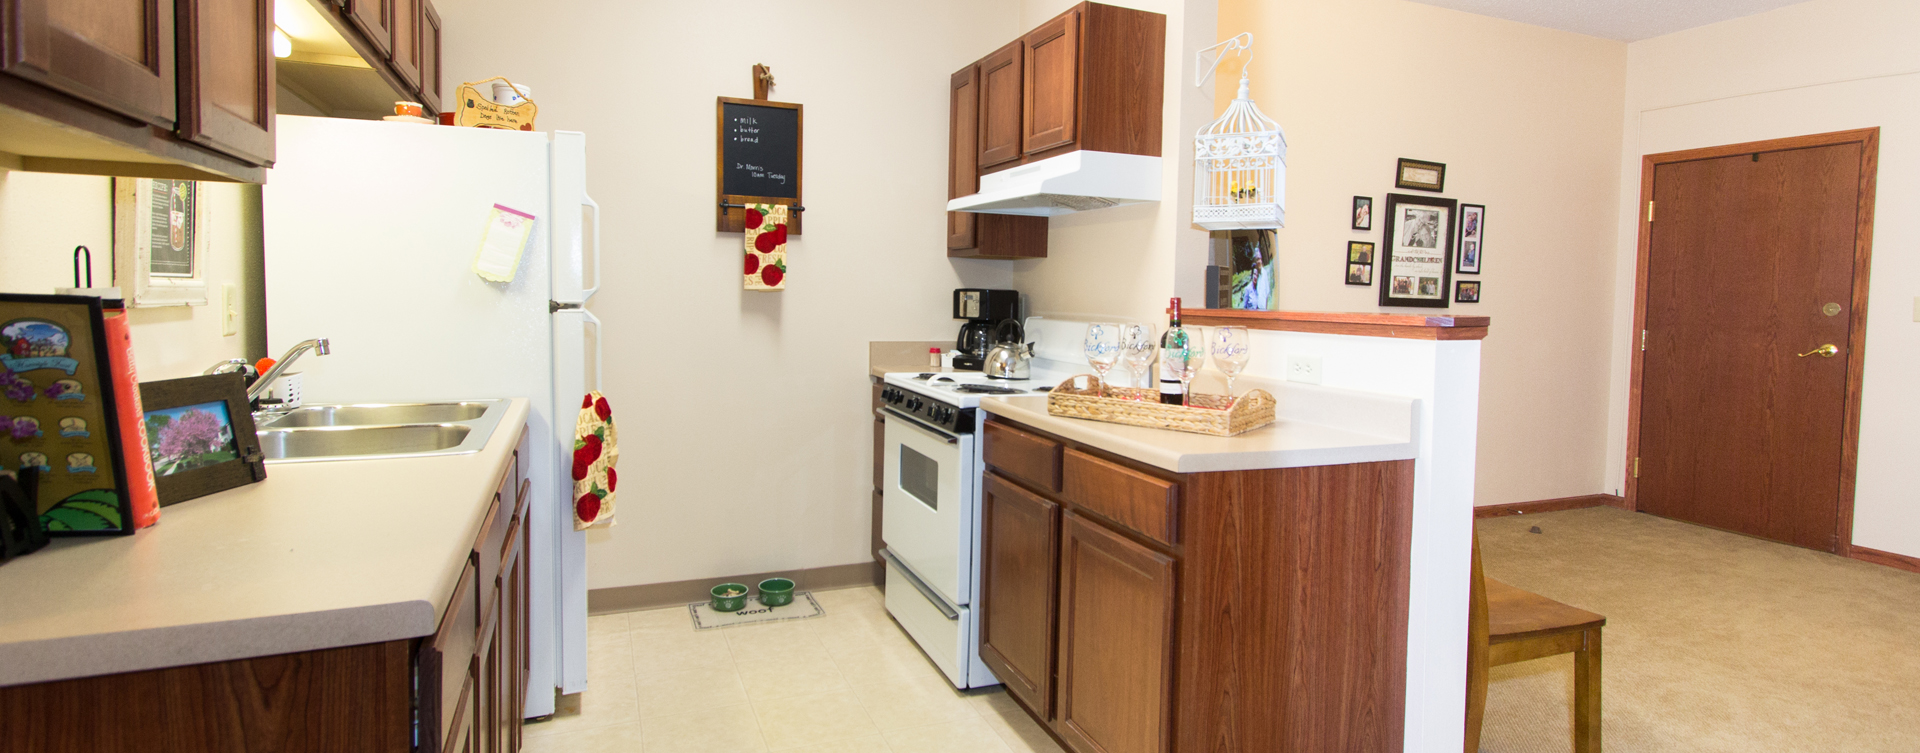 Enjoy senior friendly amenities, personal climate control and security in an apartment at Bickford of Rockford